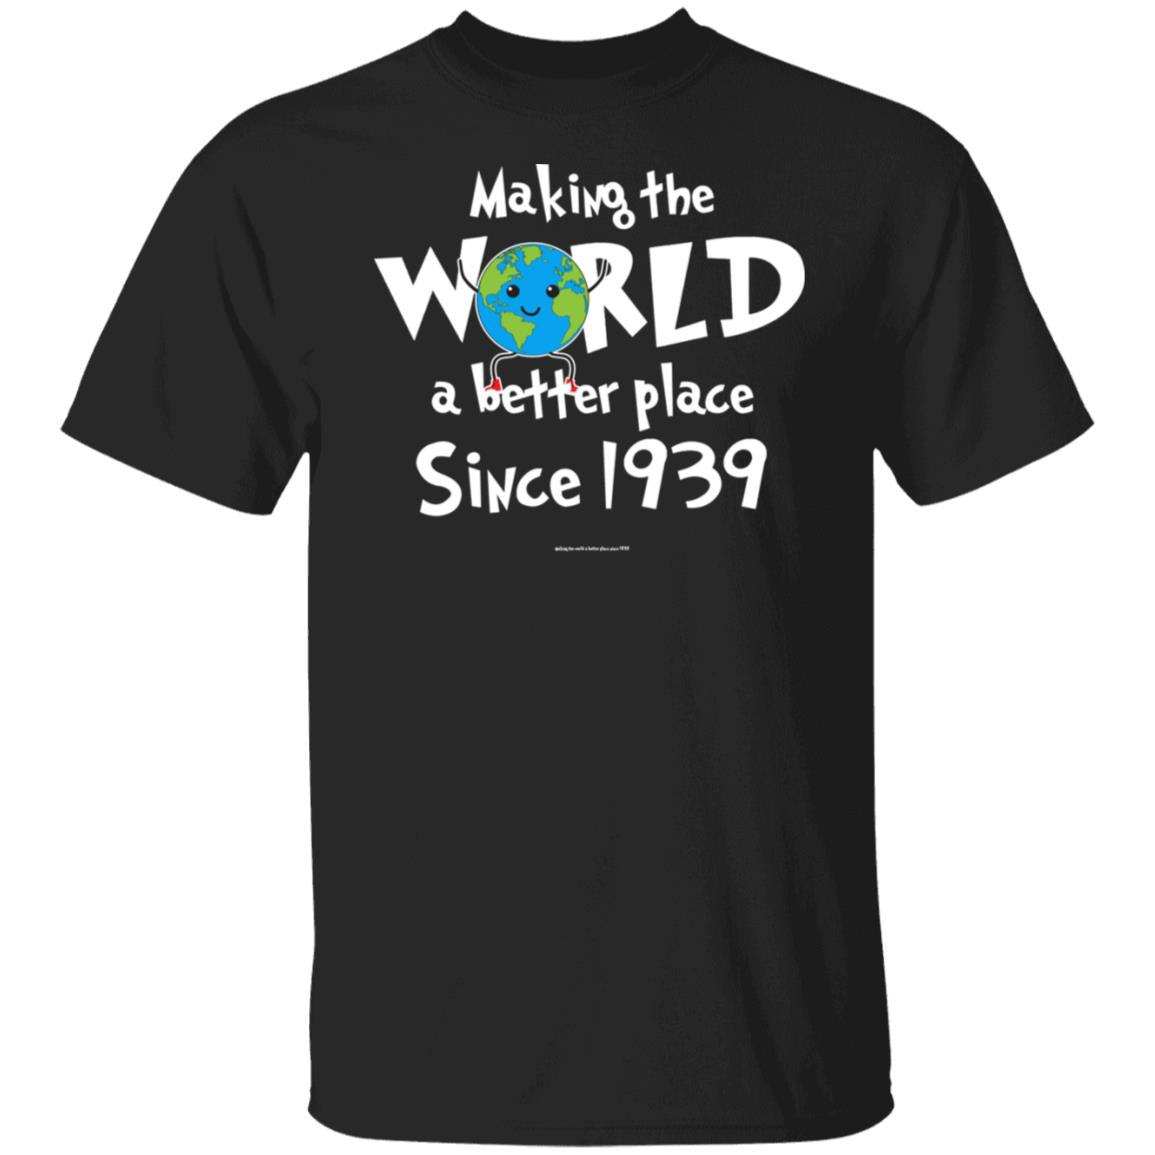 Making-the-world-a-better-place-since-1939 Black T-Shirt 99promocode